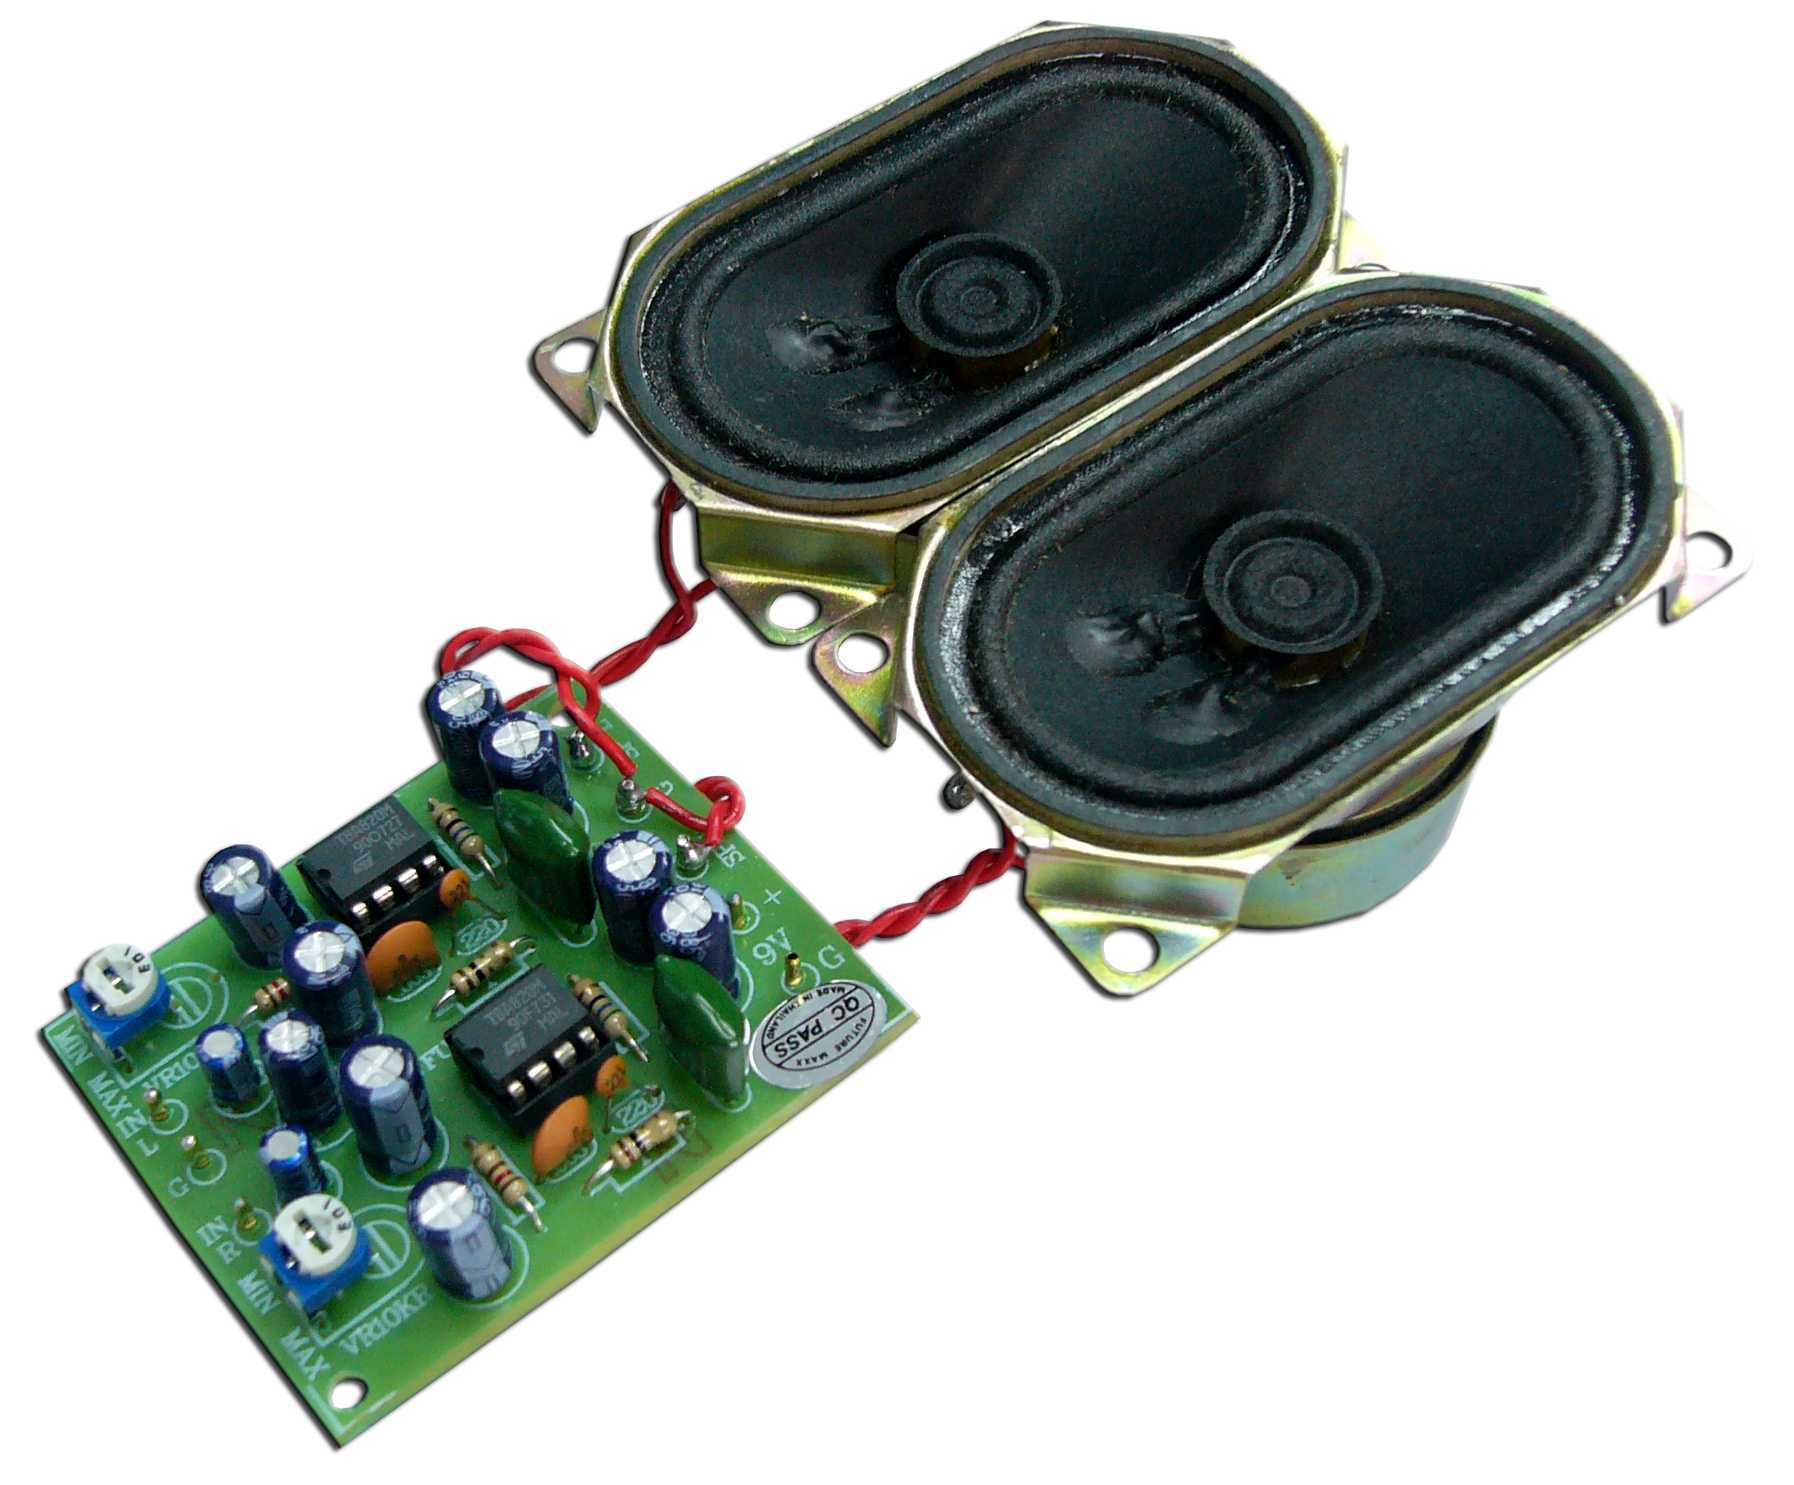 FK675: POWER AMP 2+ 2 W STEREO (WITH SPEAKER)